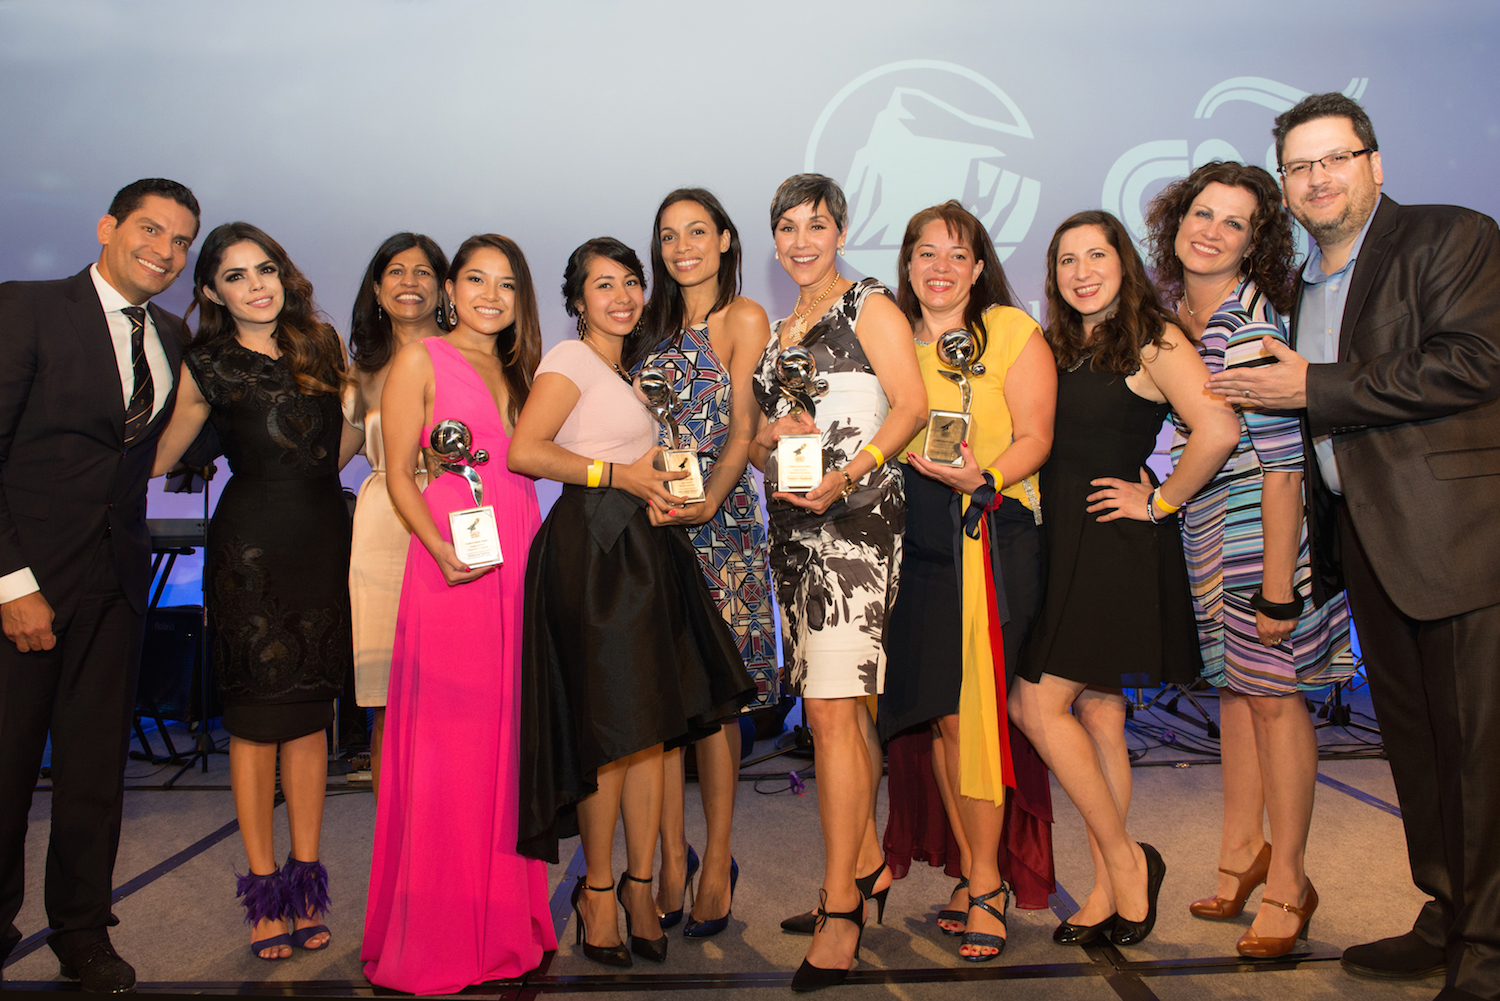 hispanicize-photos-event-miami-78